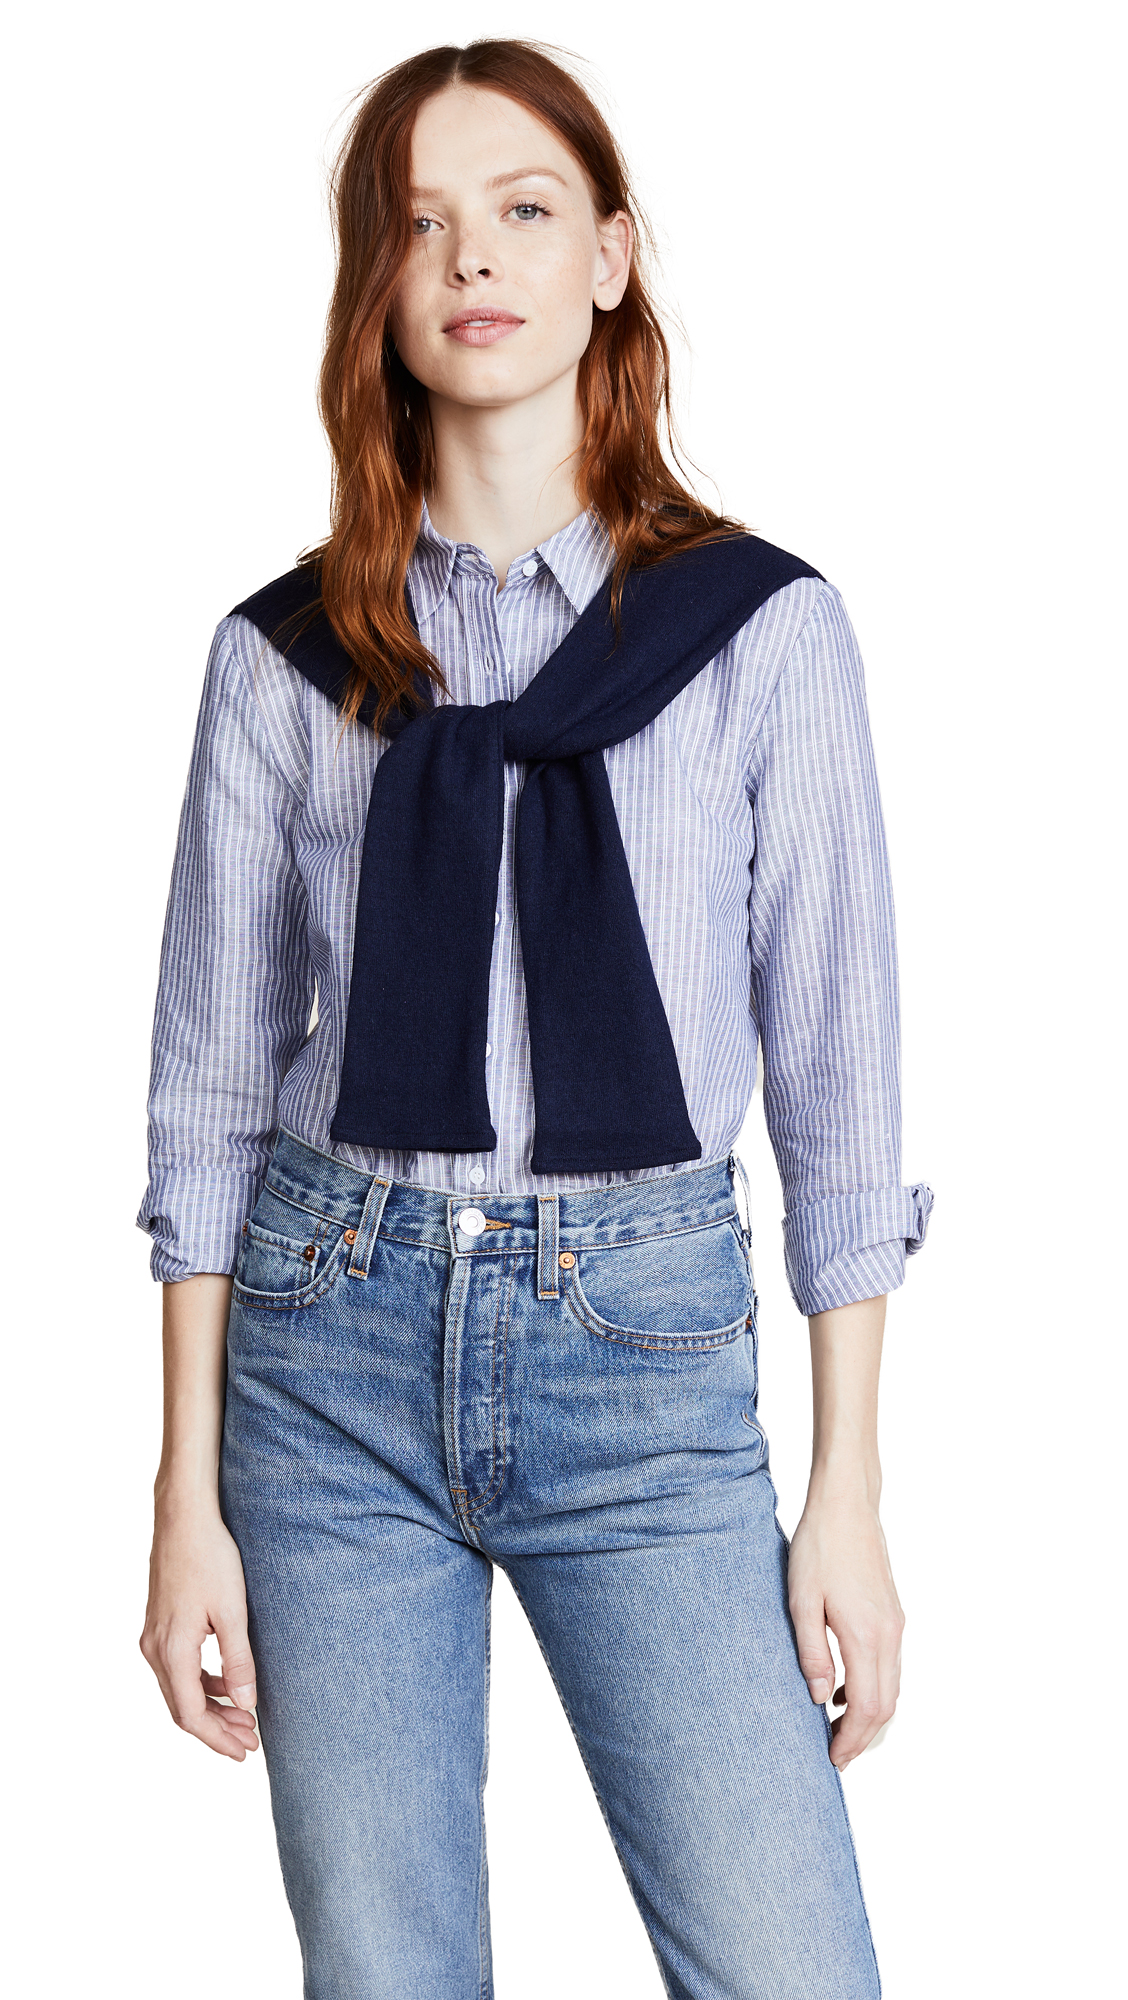 ENGLISH FACTORY Stripe Shirt with Knit - Blue/White